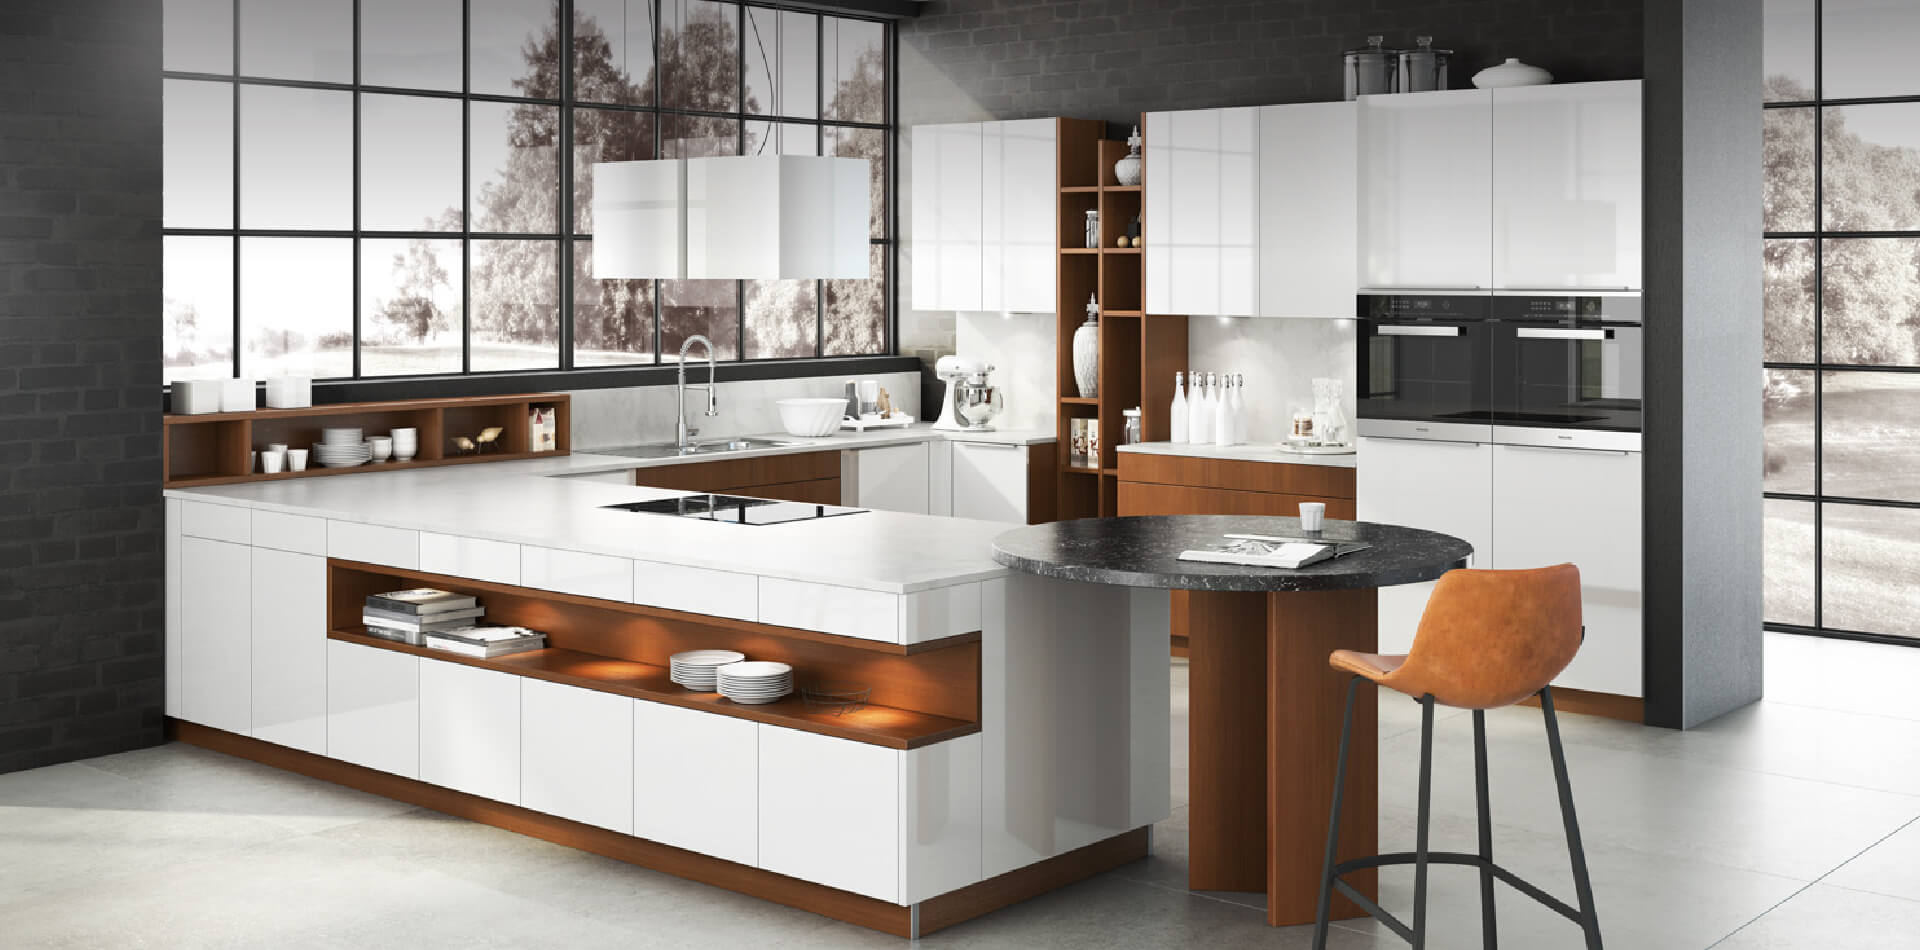 White and Brown themed kitchen